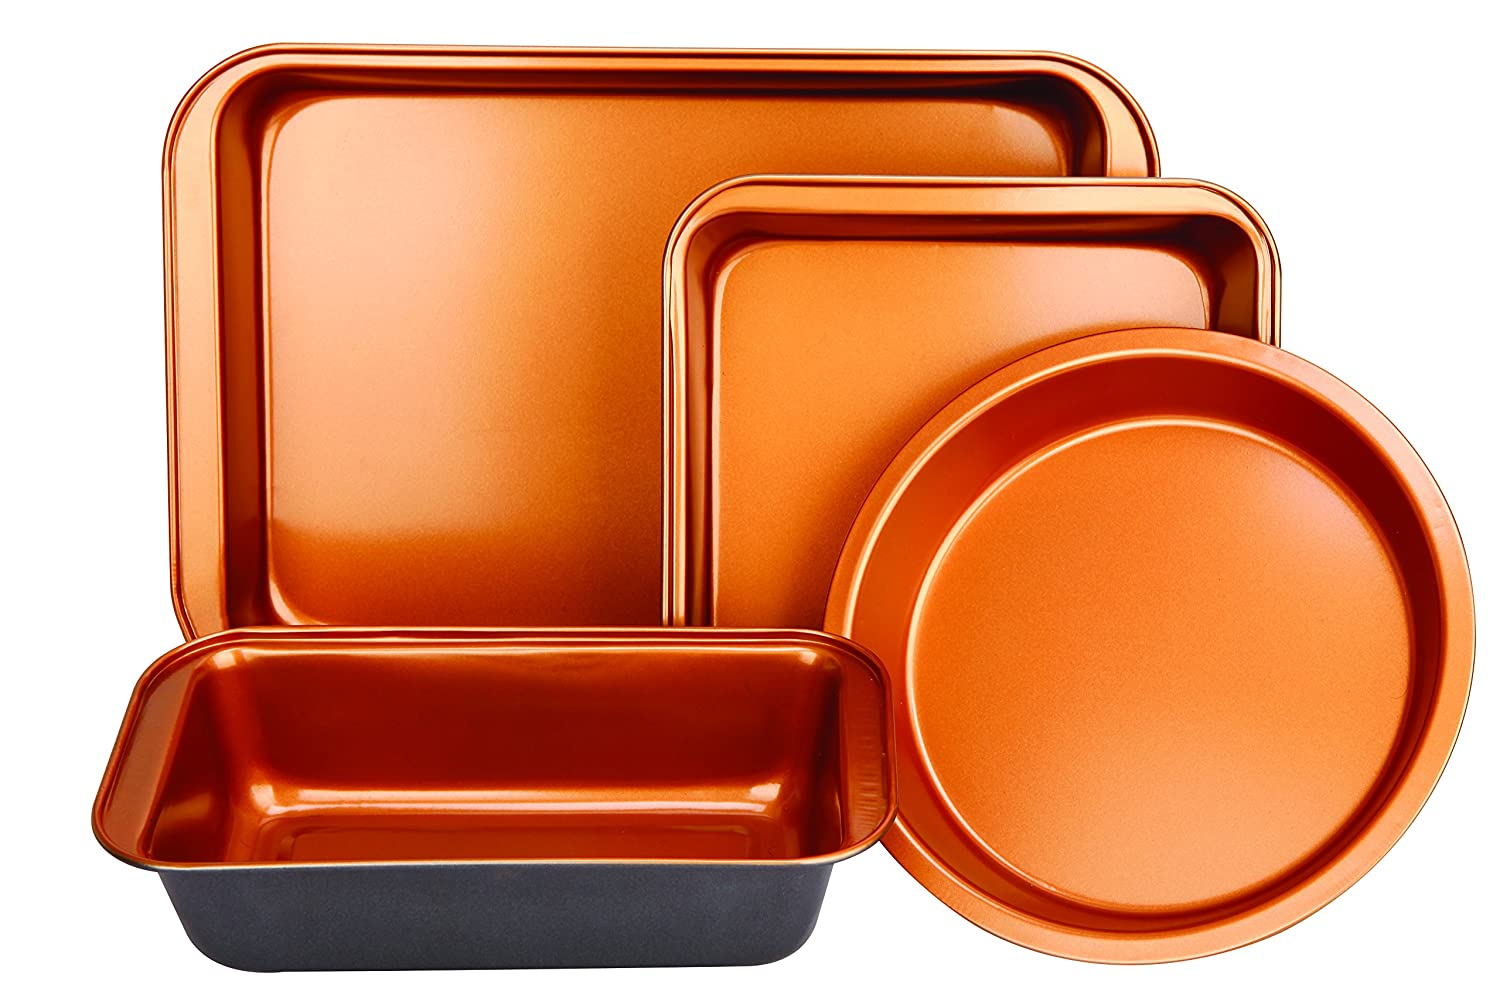 Copper Bakeware Set - Includes an Oblong Rectangular Pan, Brownie Pan, Round Cake Pan, and Meat Loaf Pan, Standard 02722